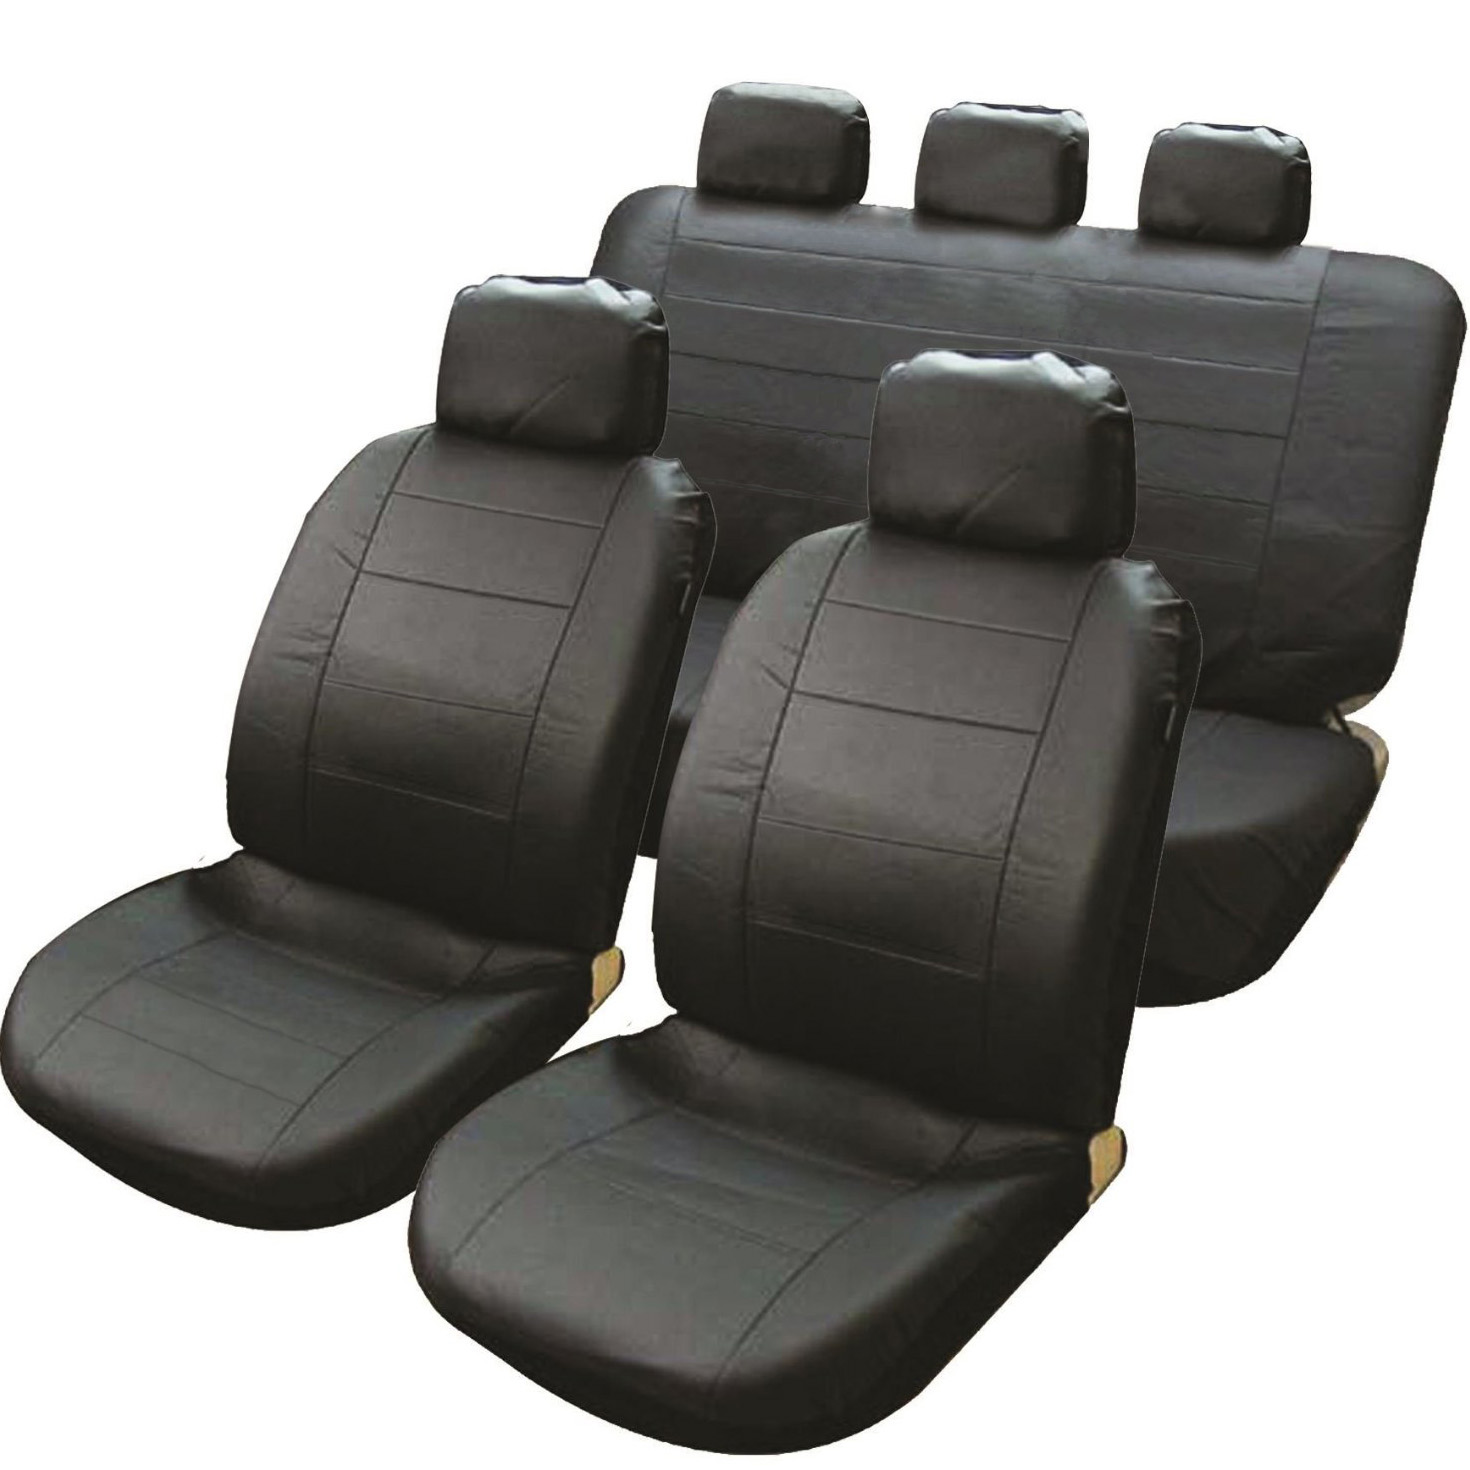 black leather look car taxi air bag friendly seat covers set split rear seats ebay. Black Bedroom Furniture Sets. Home Design Ideas